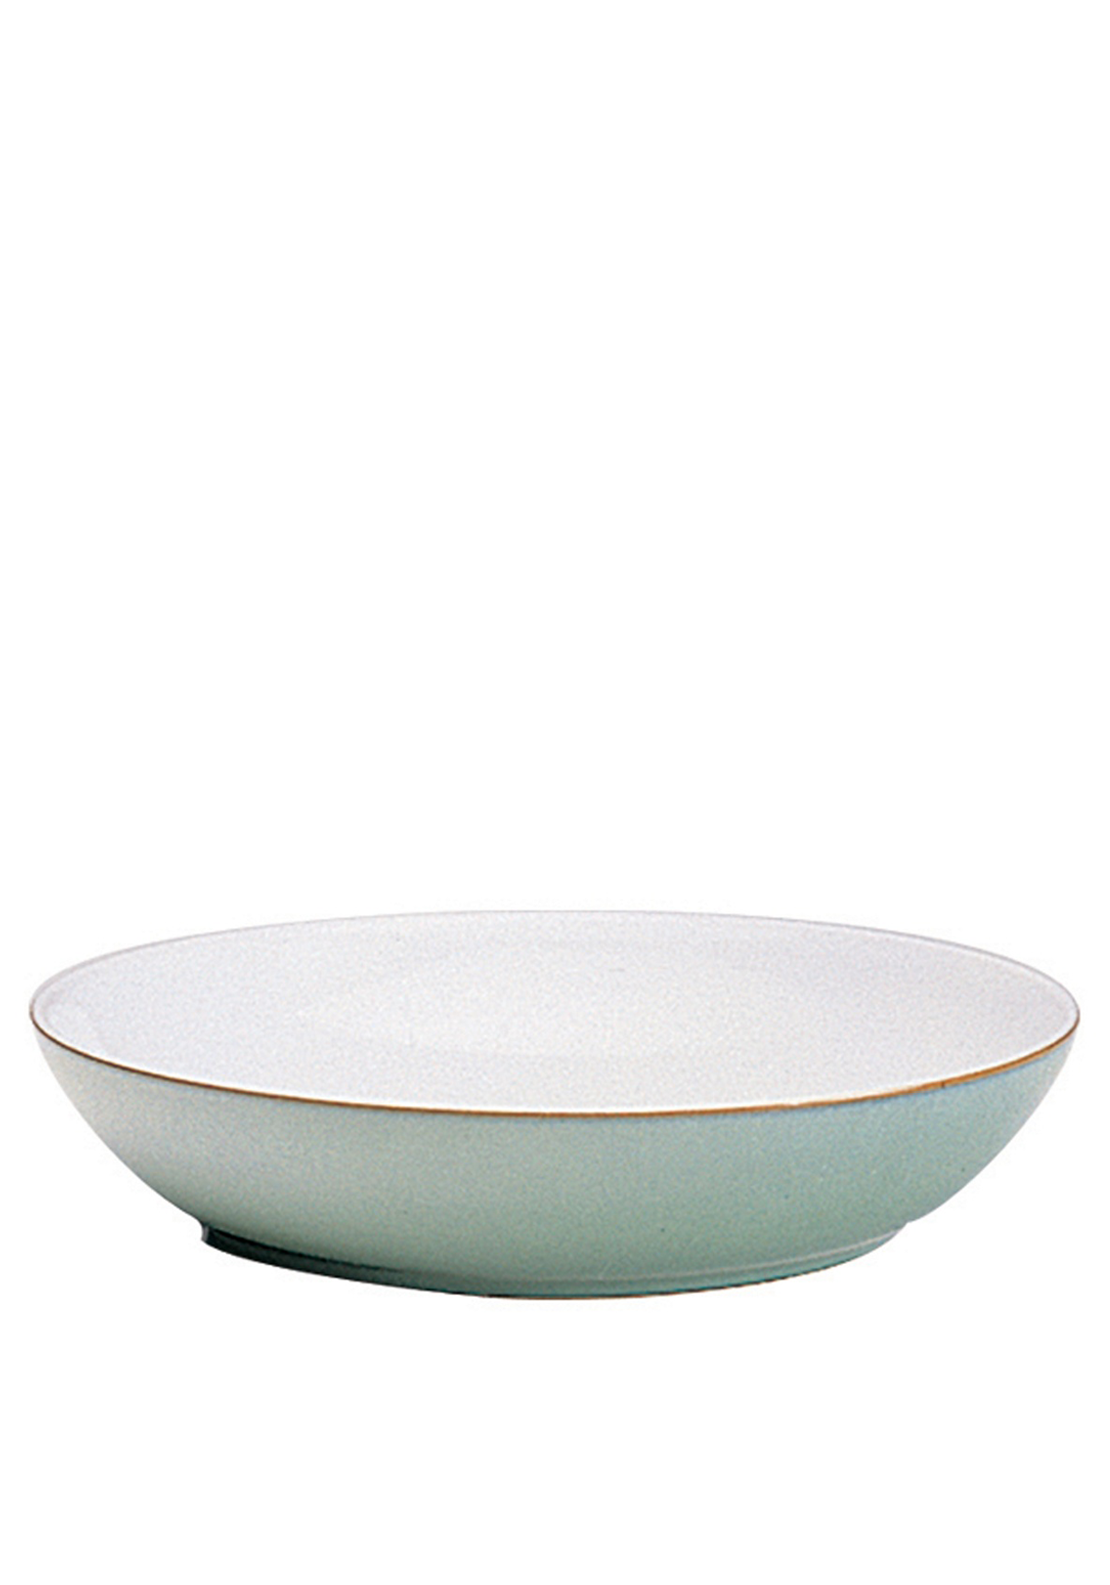 Denby Regency Green Pasta Bowl, Green